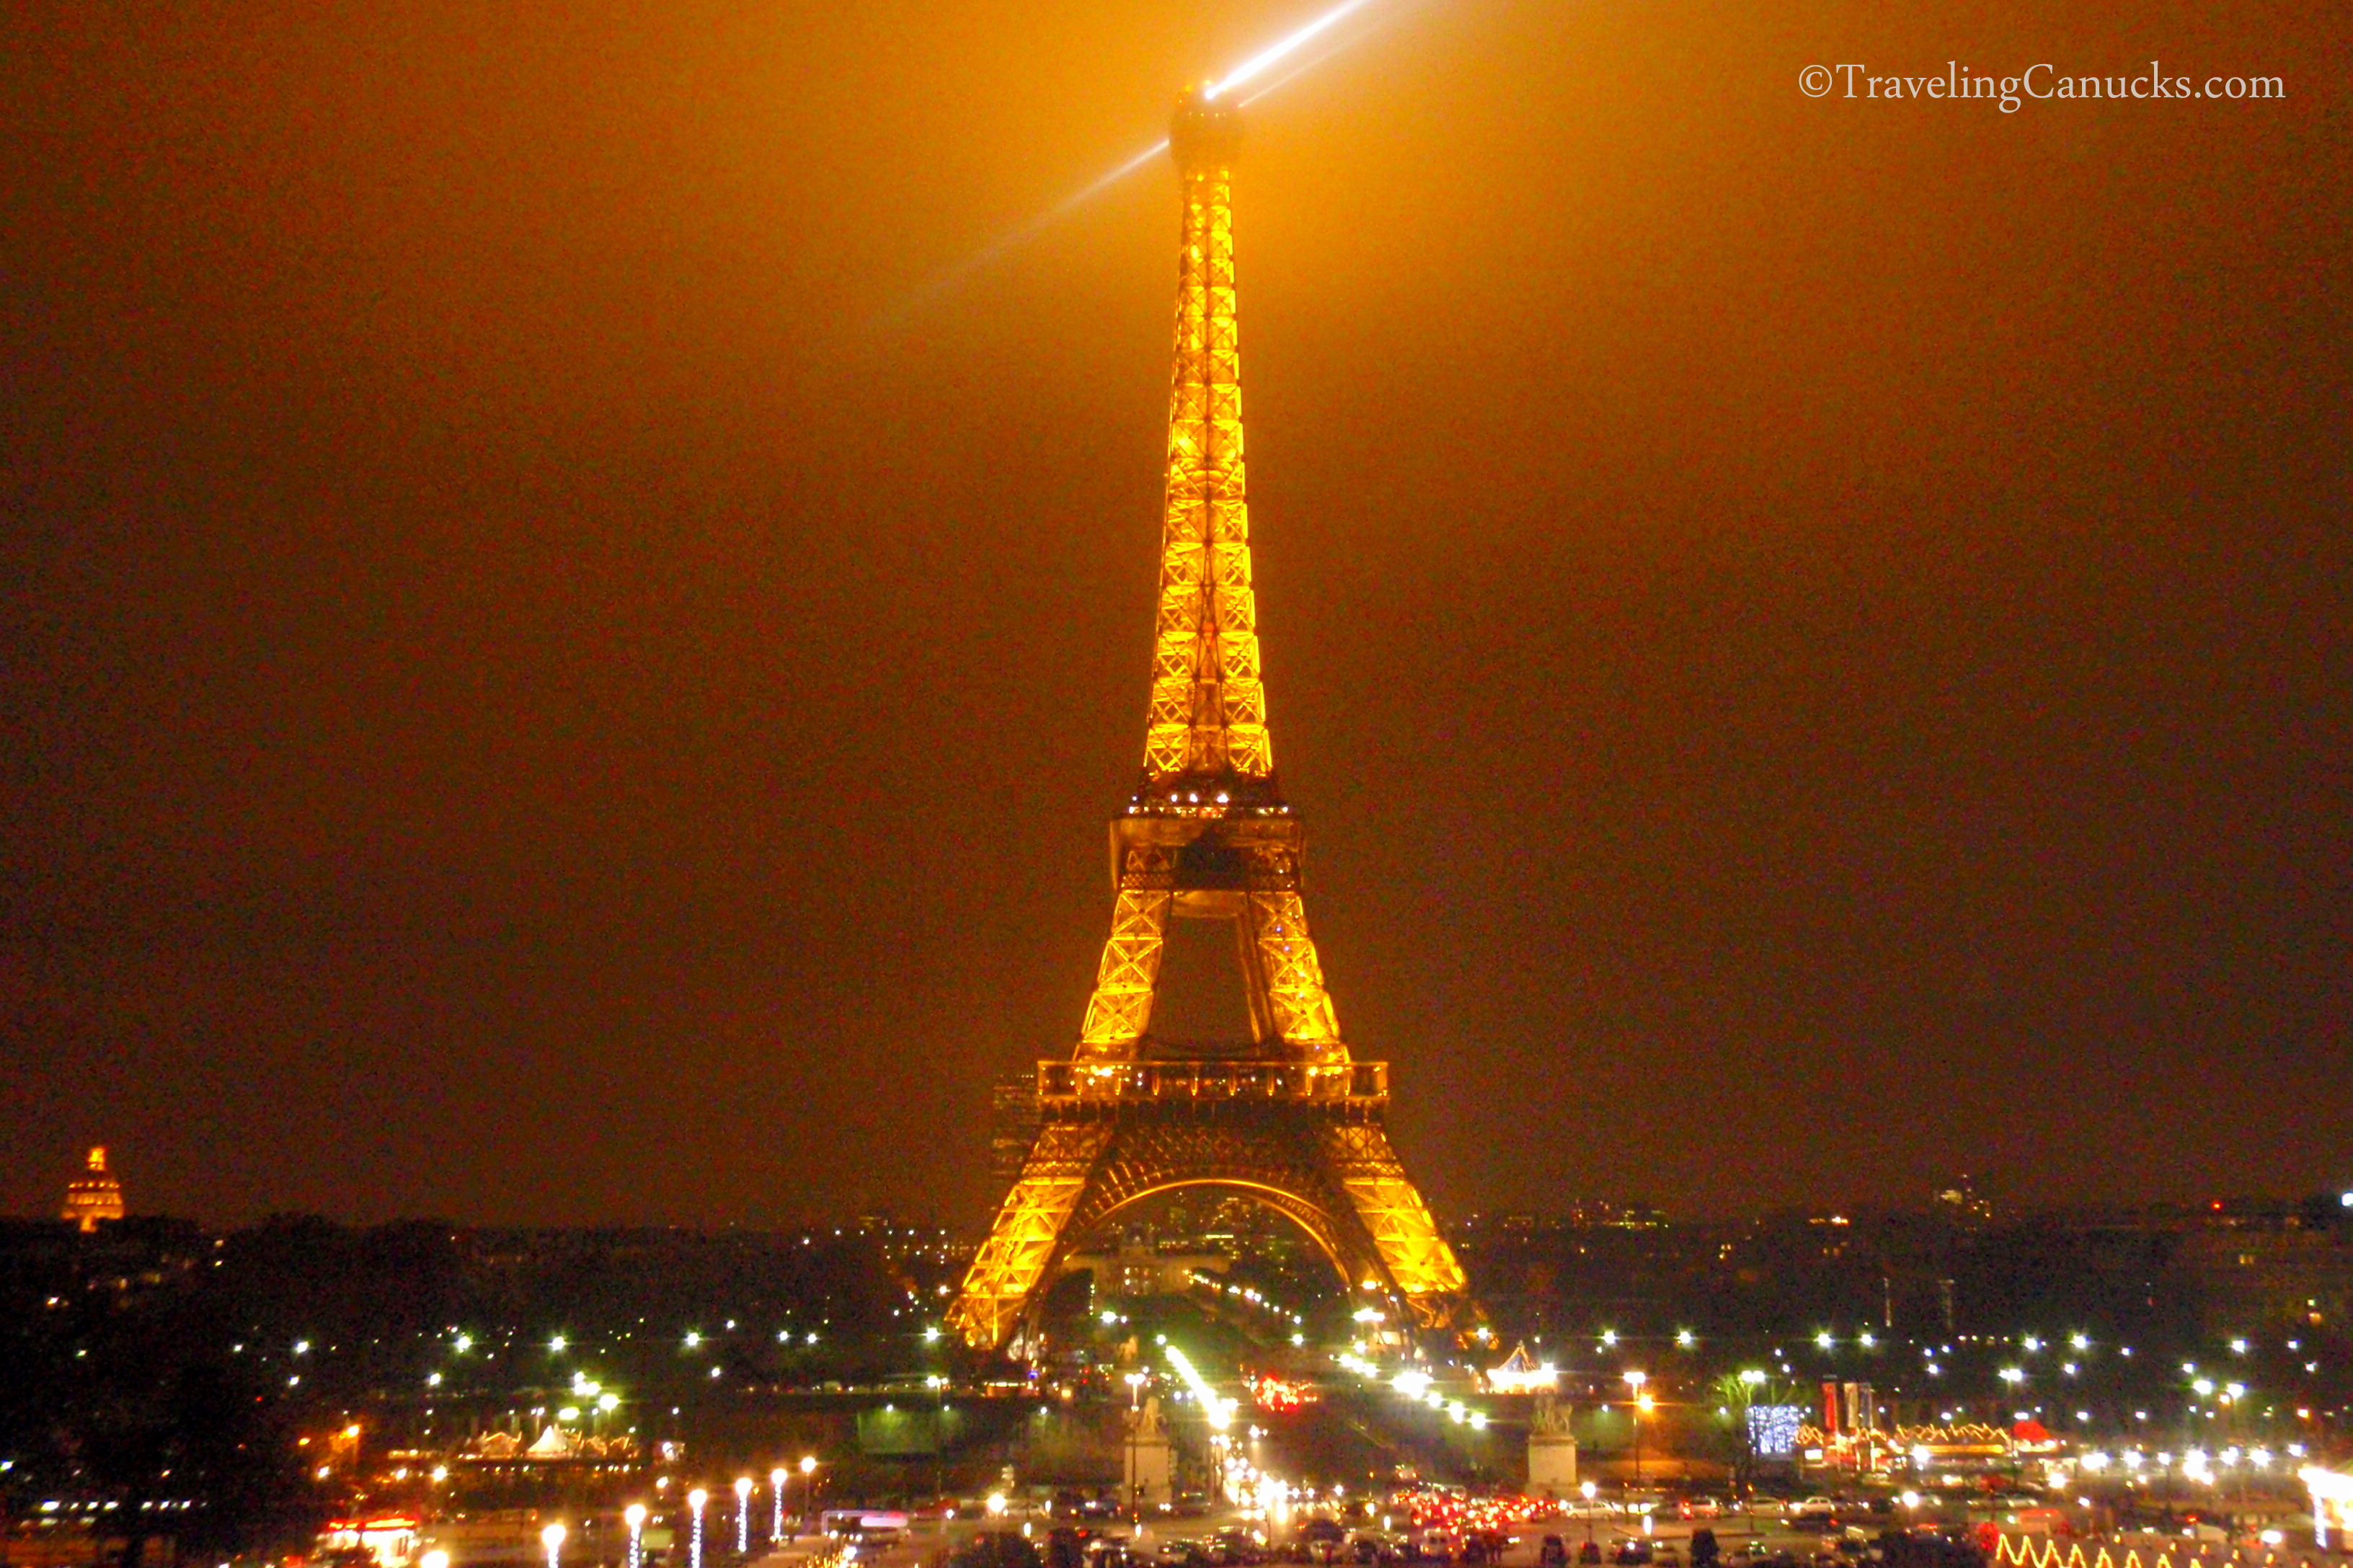 Eiffel tower light show in paris, france